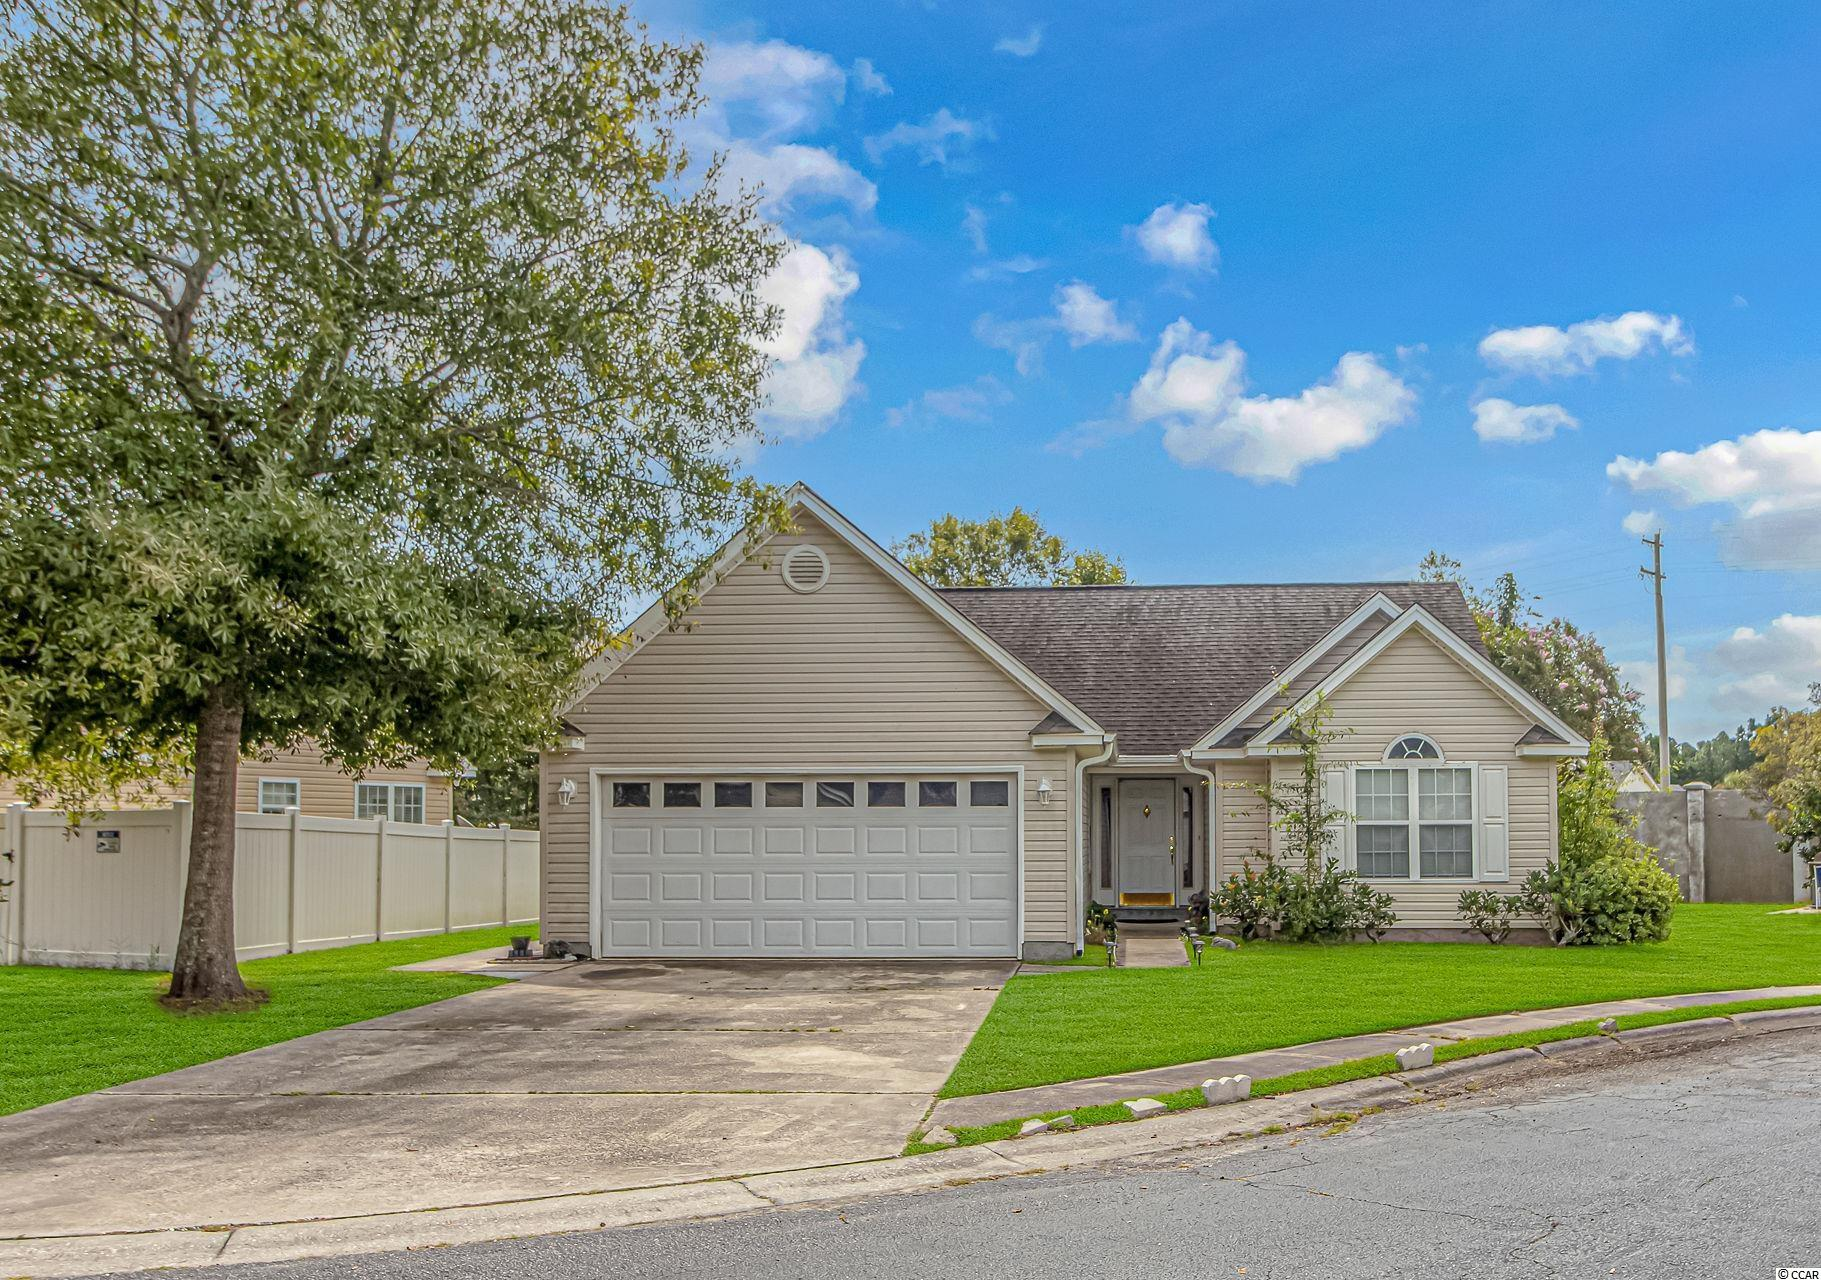 Turn-Key, 3 Bedroom, 2 Bath home available in the Summer Lakes community in Murrells Inlet.  This home showcases an open living area with vaulted ceilings making it feel very spacious inside.  The galley style kitchen has been updated and includes white cabinetry, granite counters, stainless steel appliances, a pantry, and an eat-in area.  A split bedroom plan is present - and the master suite includes vaulted ceilings, an extended double vanity, walk-in closet and linen closet.  Don't miss the 2nd kitchen in the garage - with cabinets, counters, stove and refrigerator - a perfect place to entertain in the colder months!  This location is right off Highway 707 which provides easy access to plenty of shopping, dining and entertainment options and is just a short drive to the beach.  Measurements are not guaranteed and are the buyers responsibility to verify.